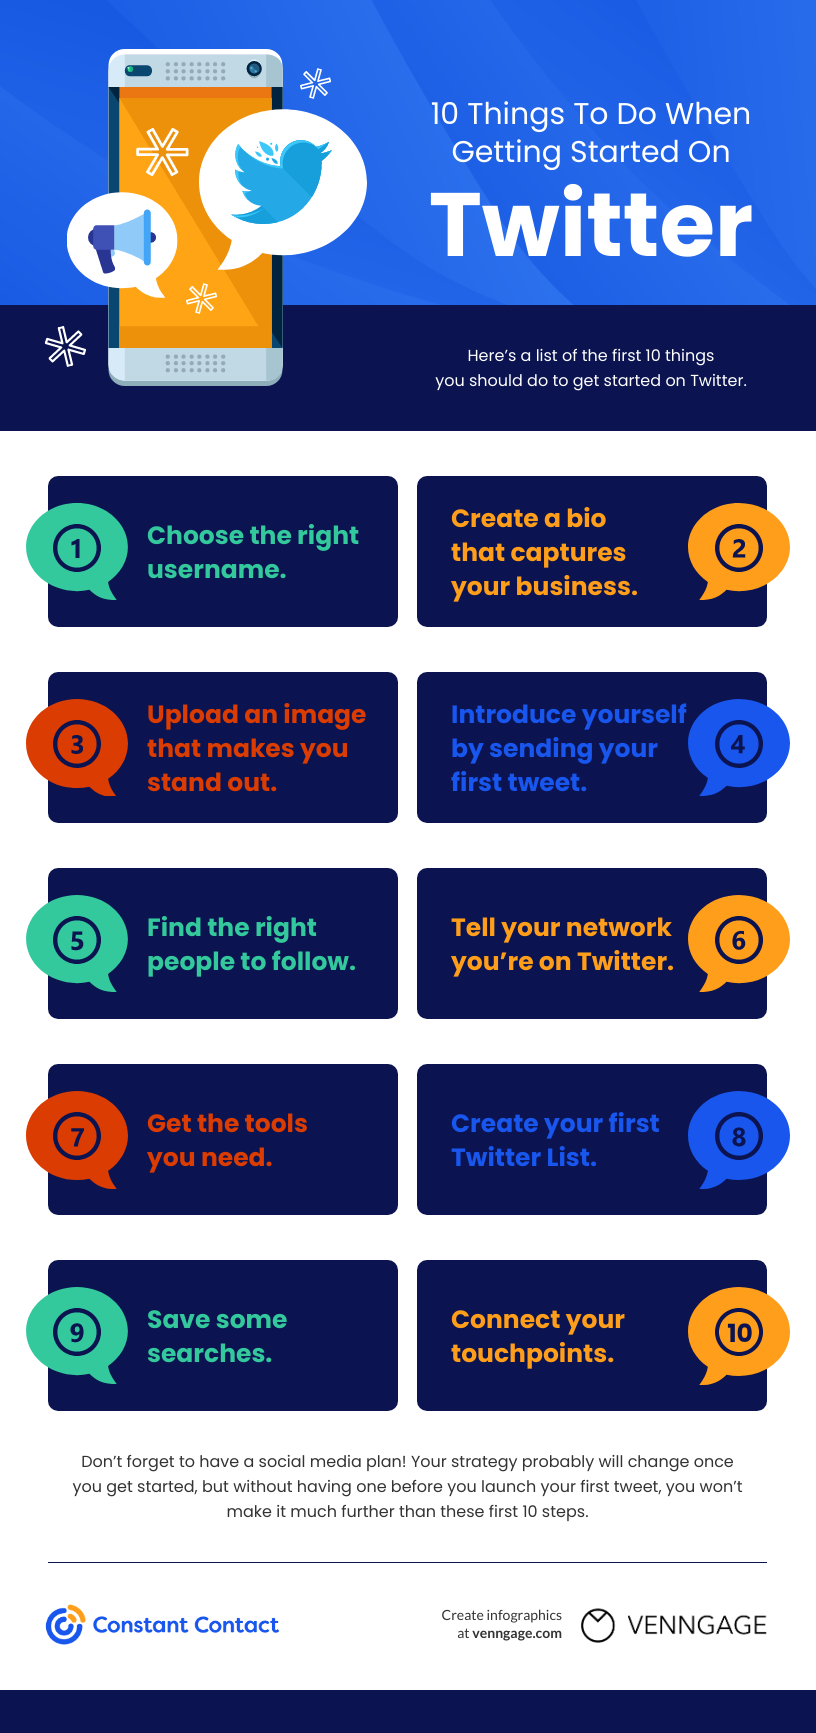 10 things to do when getting started on Twitter.